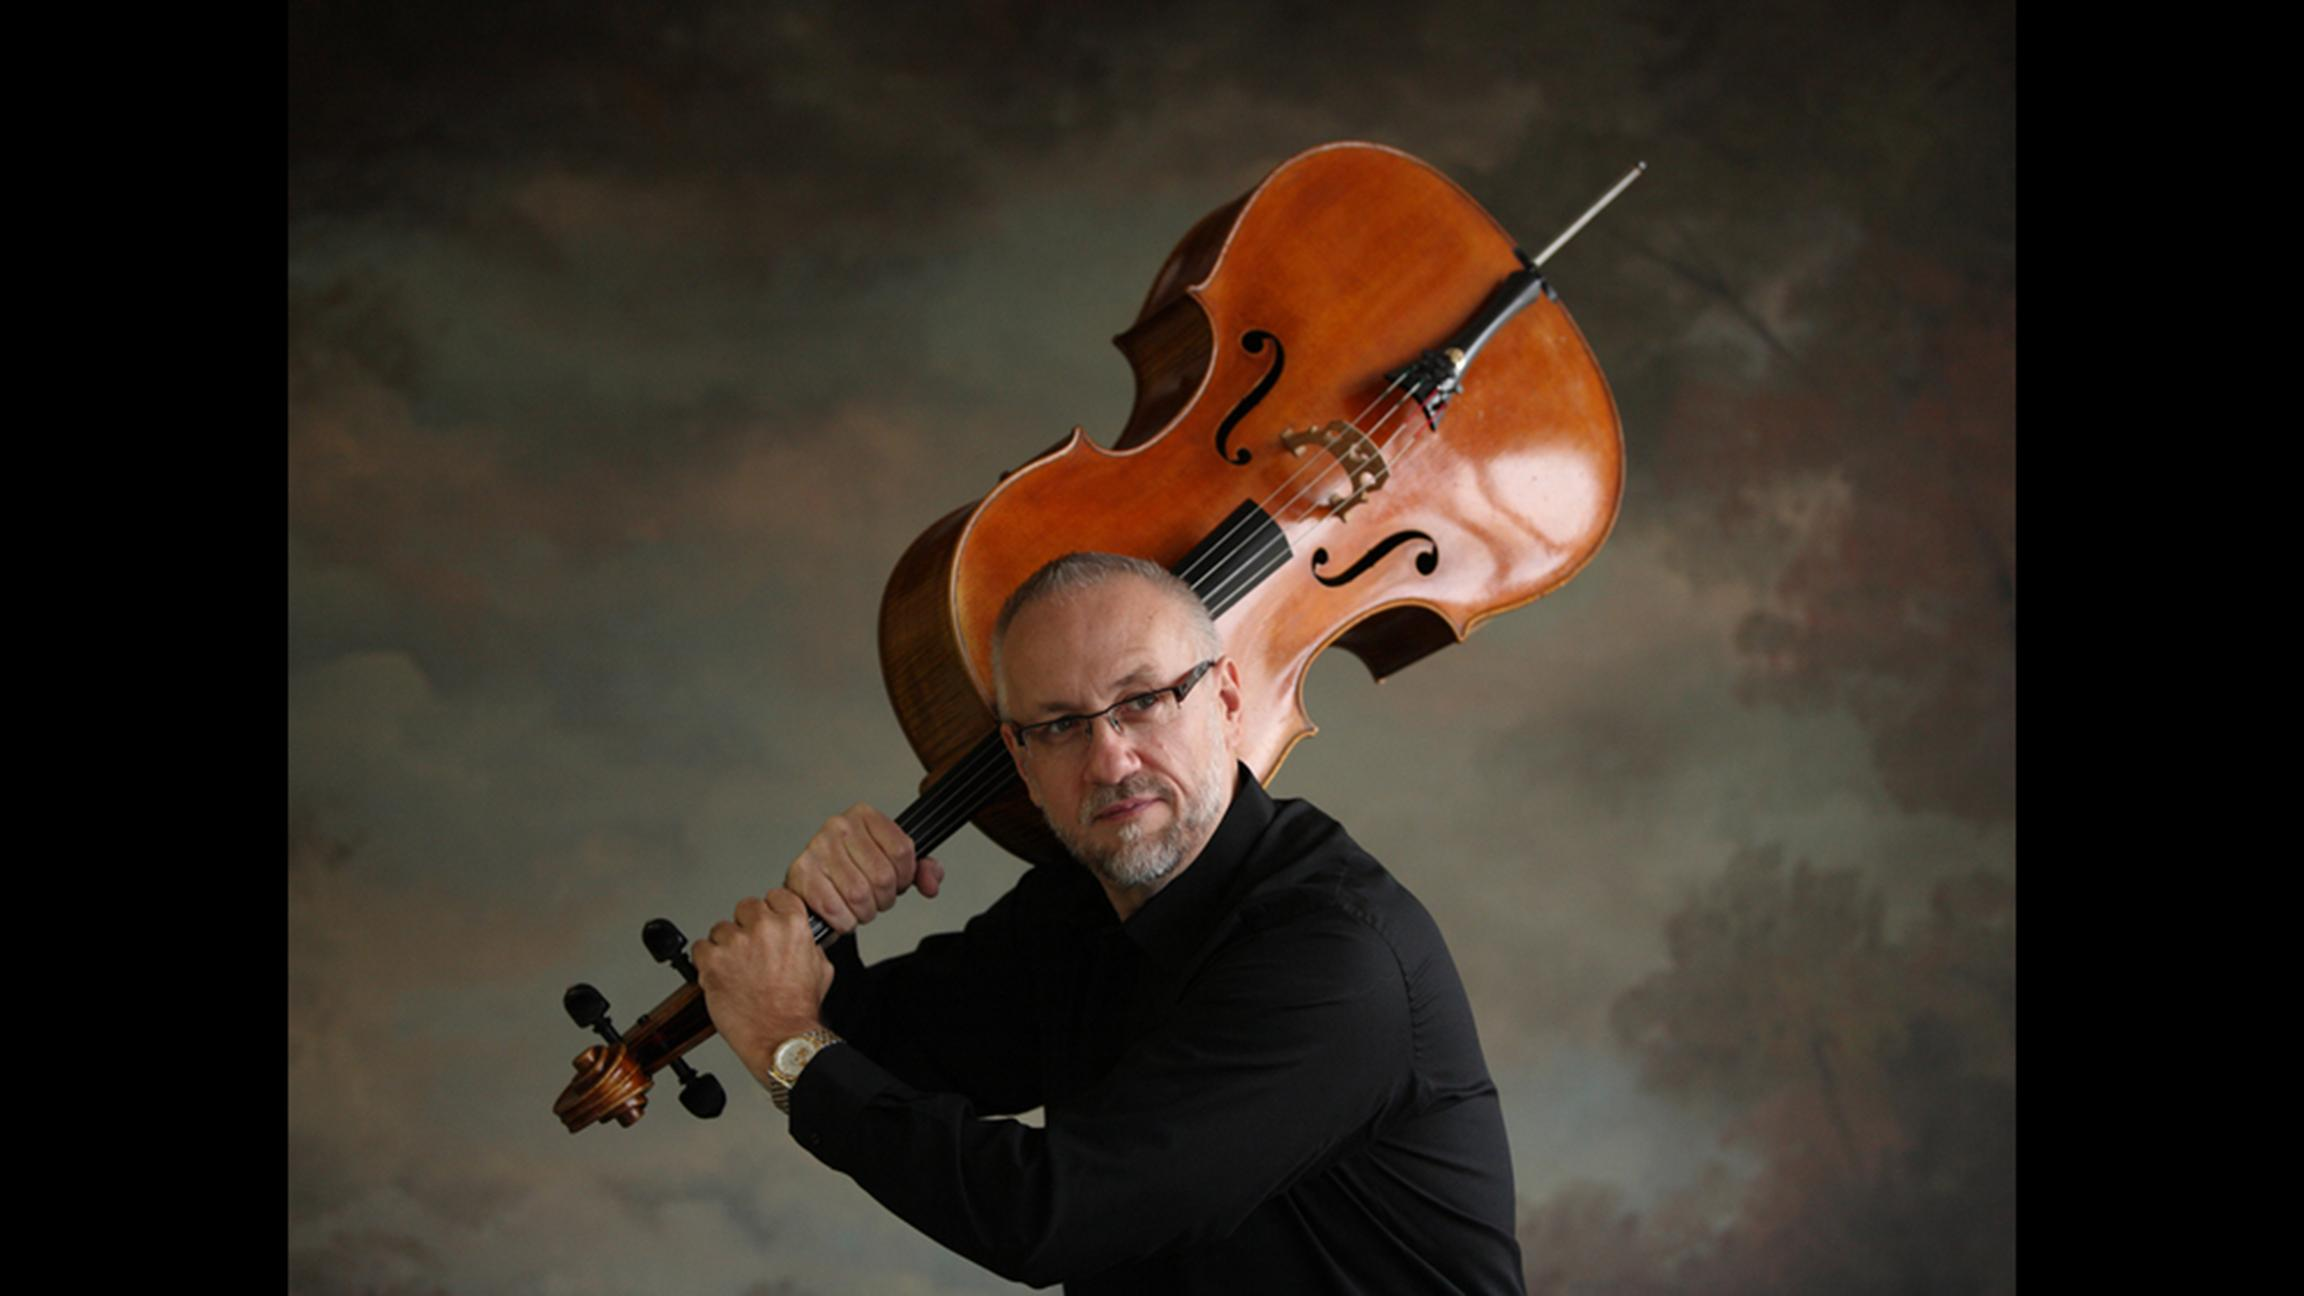 Cellist Steven Houser classes up the standard brunch plans this weekend. (Courtesy of The Chicago Philharmonic Society)